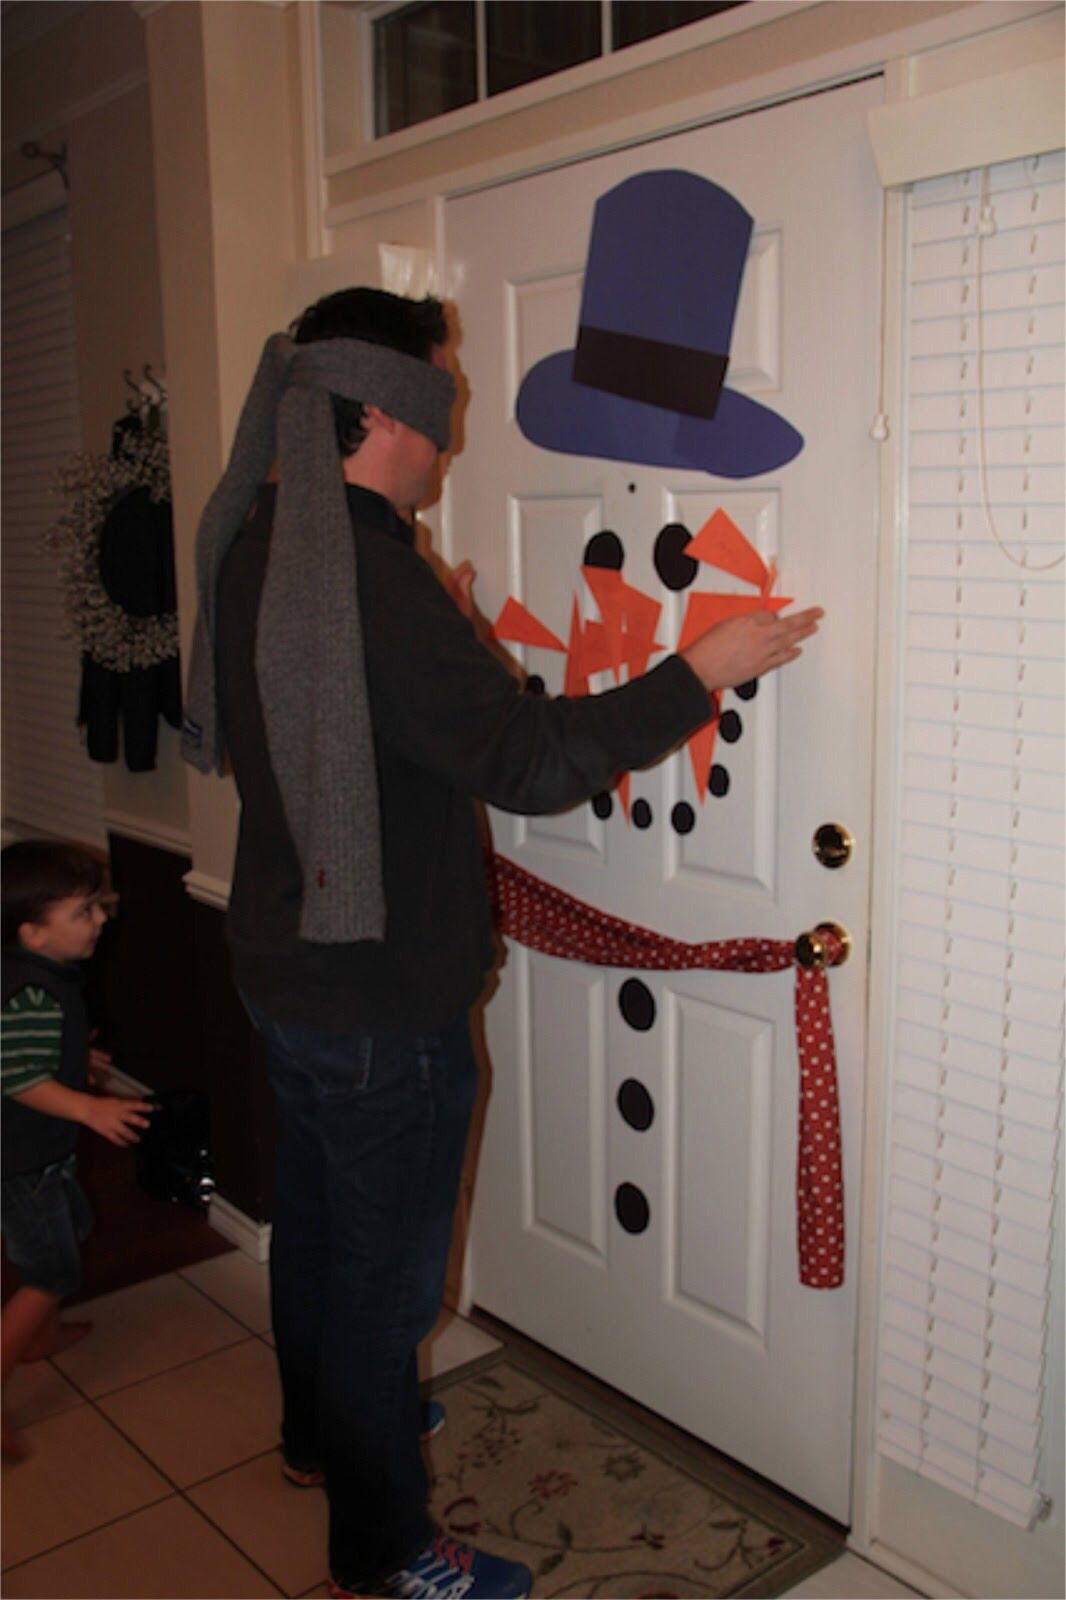 Pin the nose on a snowman | Work ideas | Pinterest | Snowman, Gaming ...